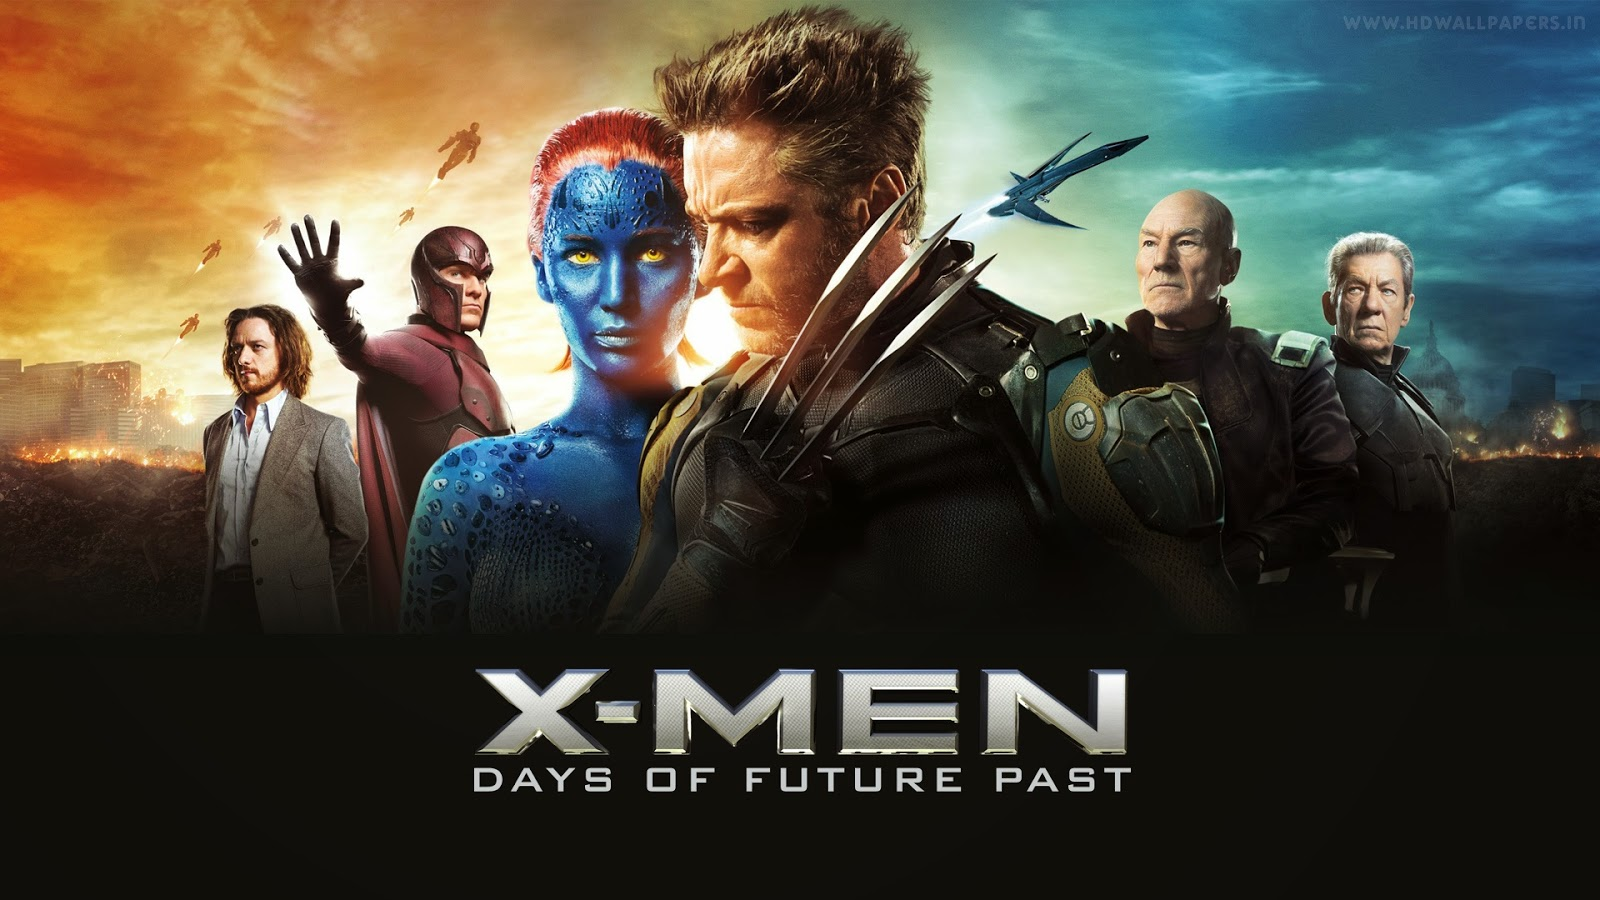 wait watch wonder movies in review x men days of future past movies in review x men days of future past